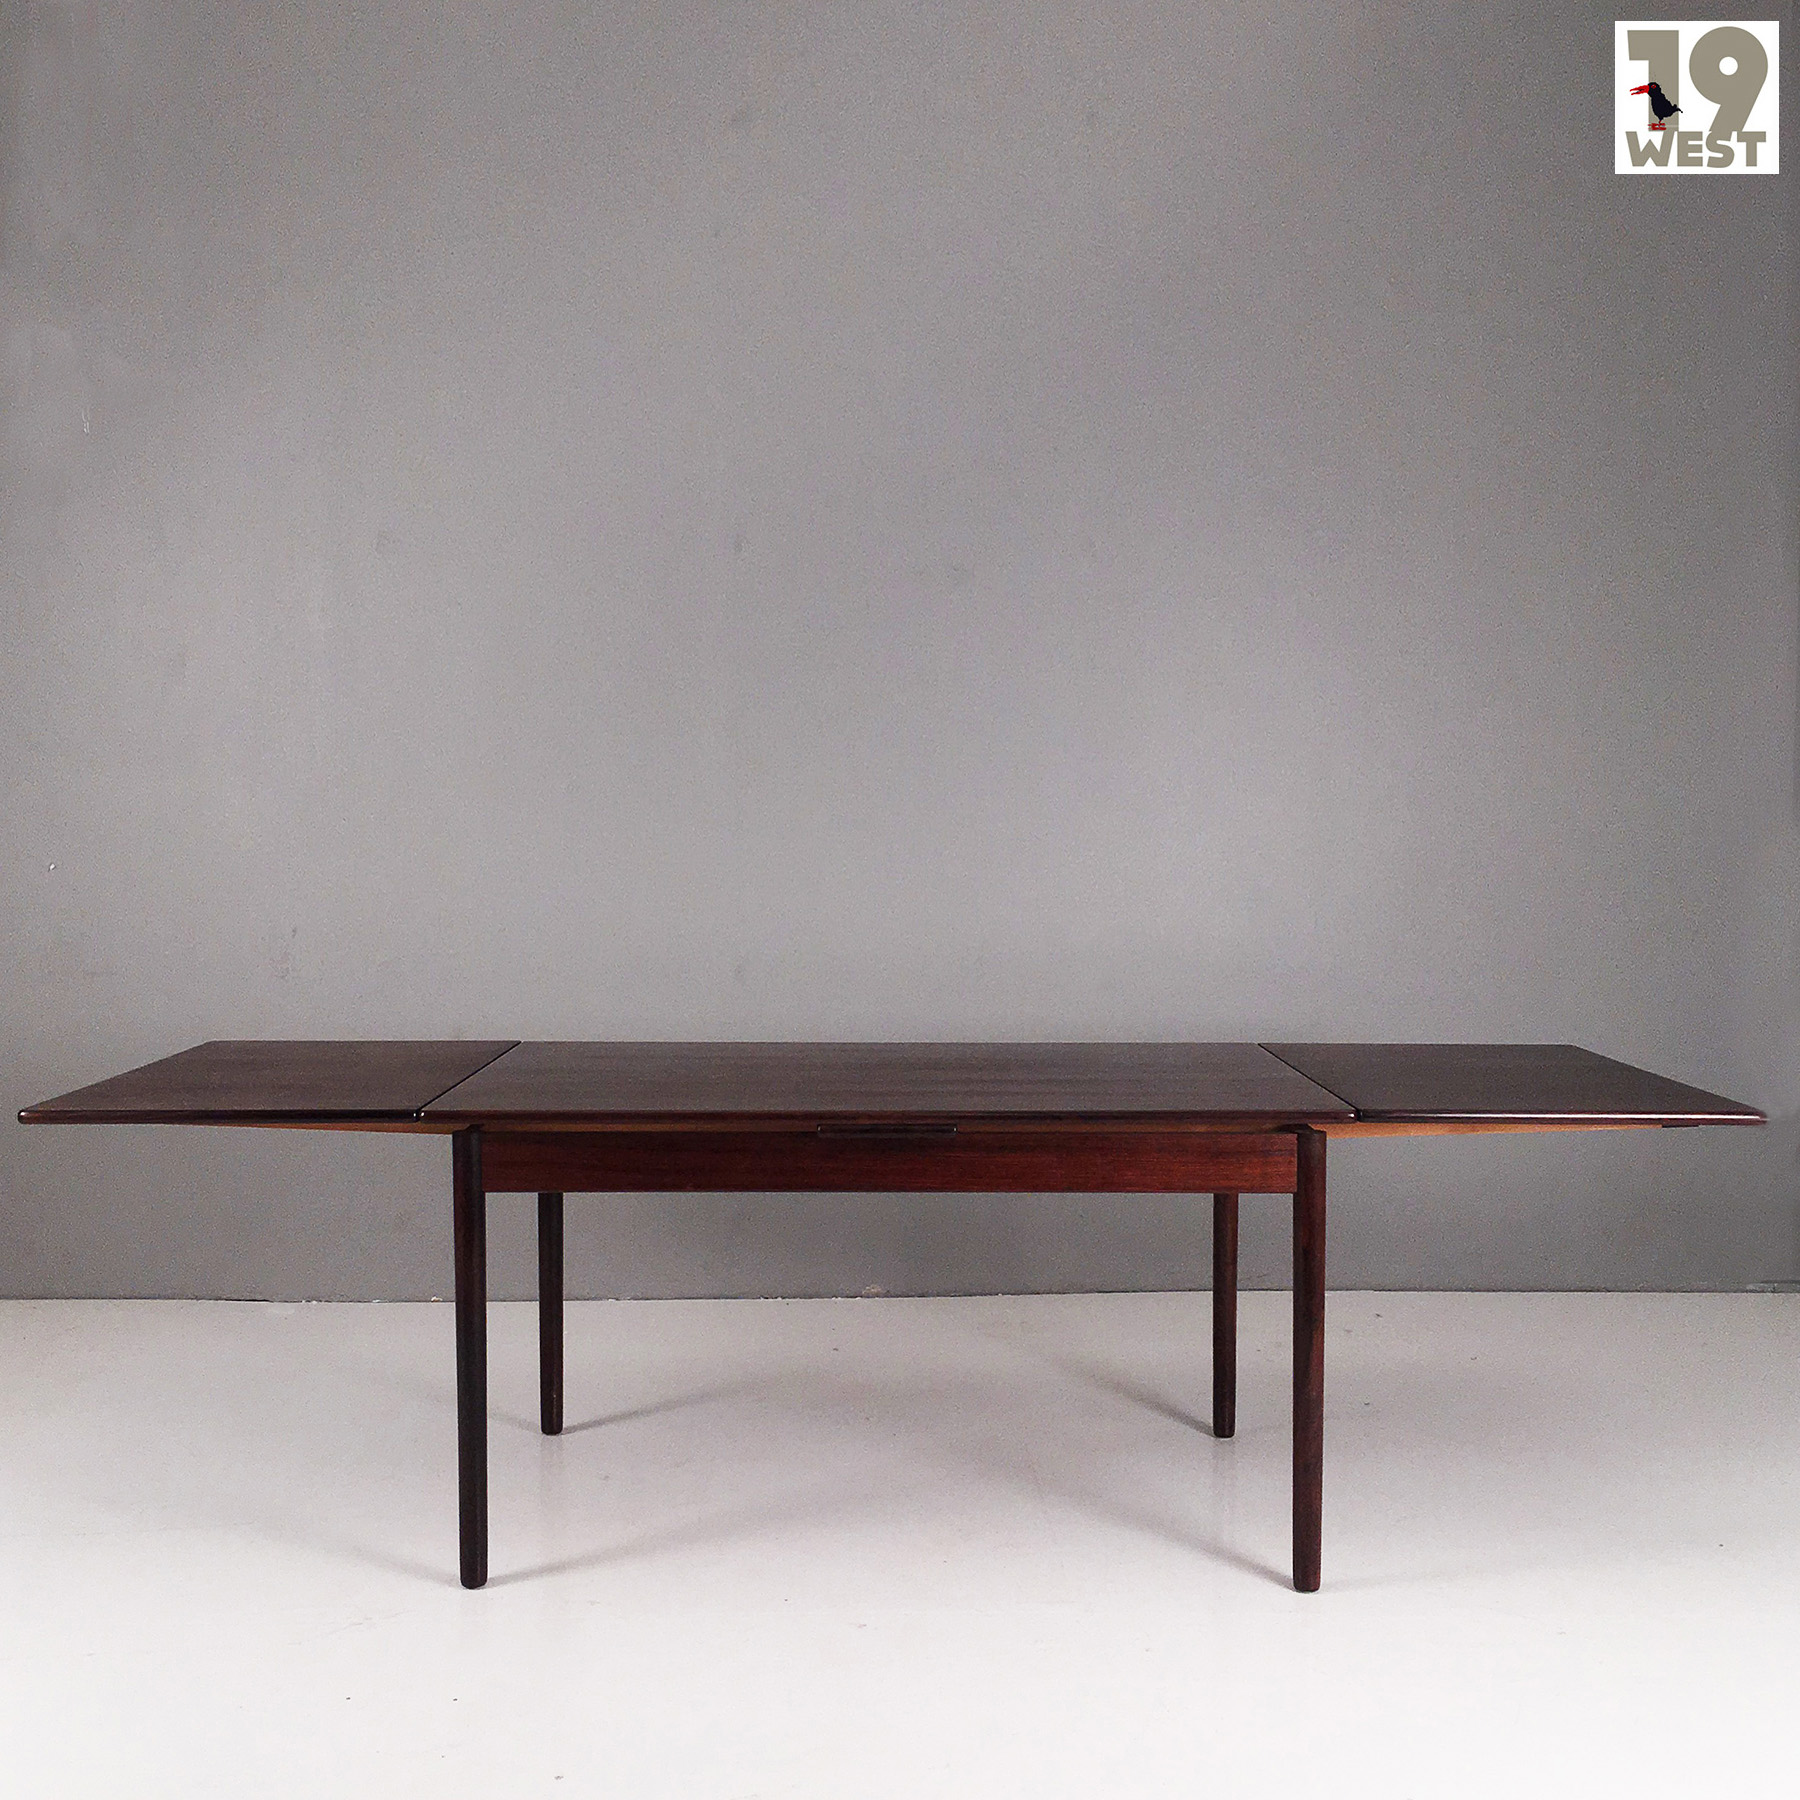 19west-cologne-vintage-extendable-rosewood-dining-table-1960-1